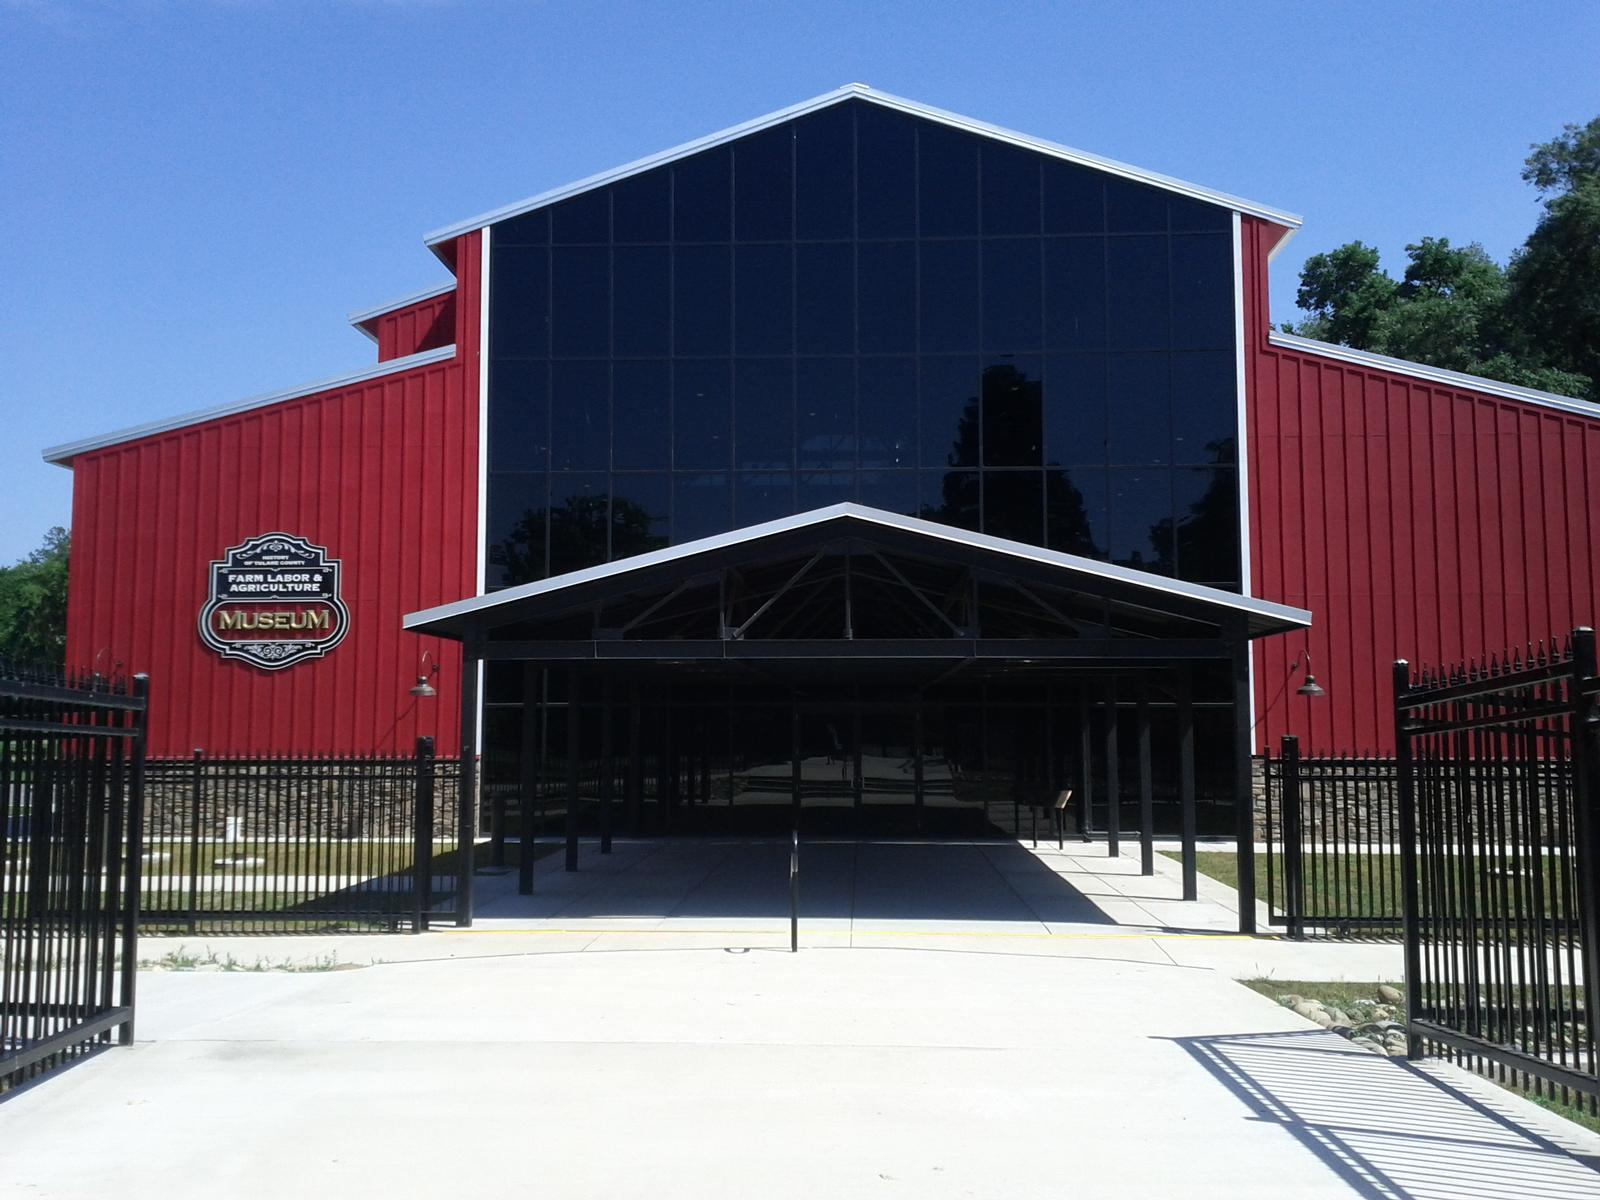 The newest addition to the museum complex is the History of Farm Labor and Agriculture Museum